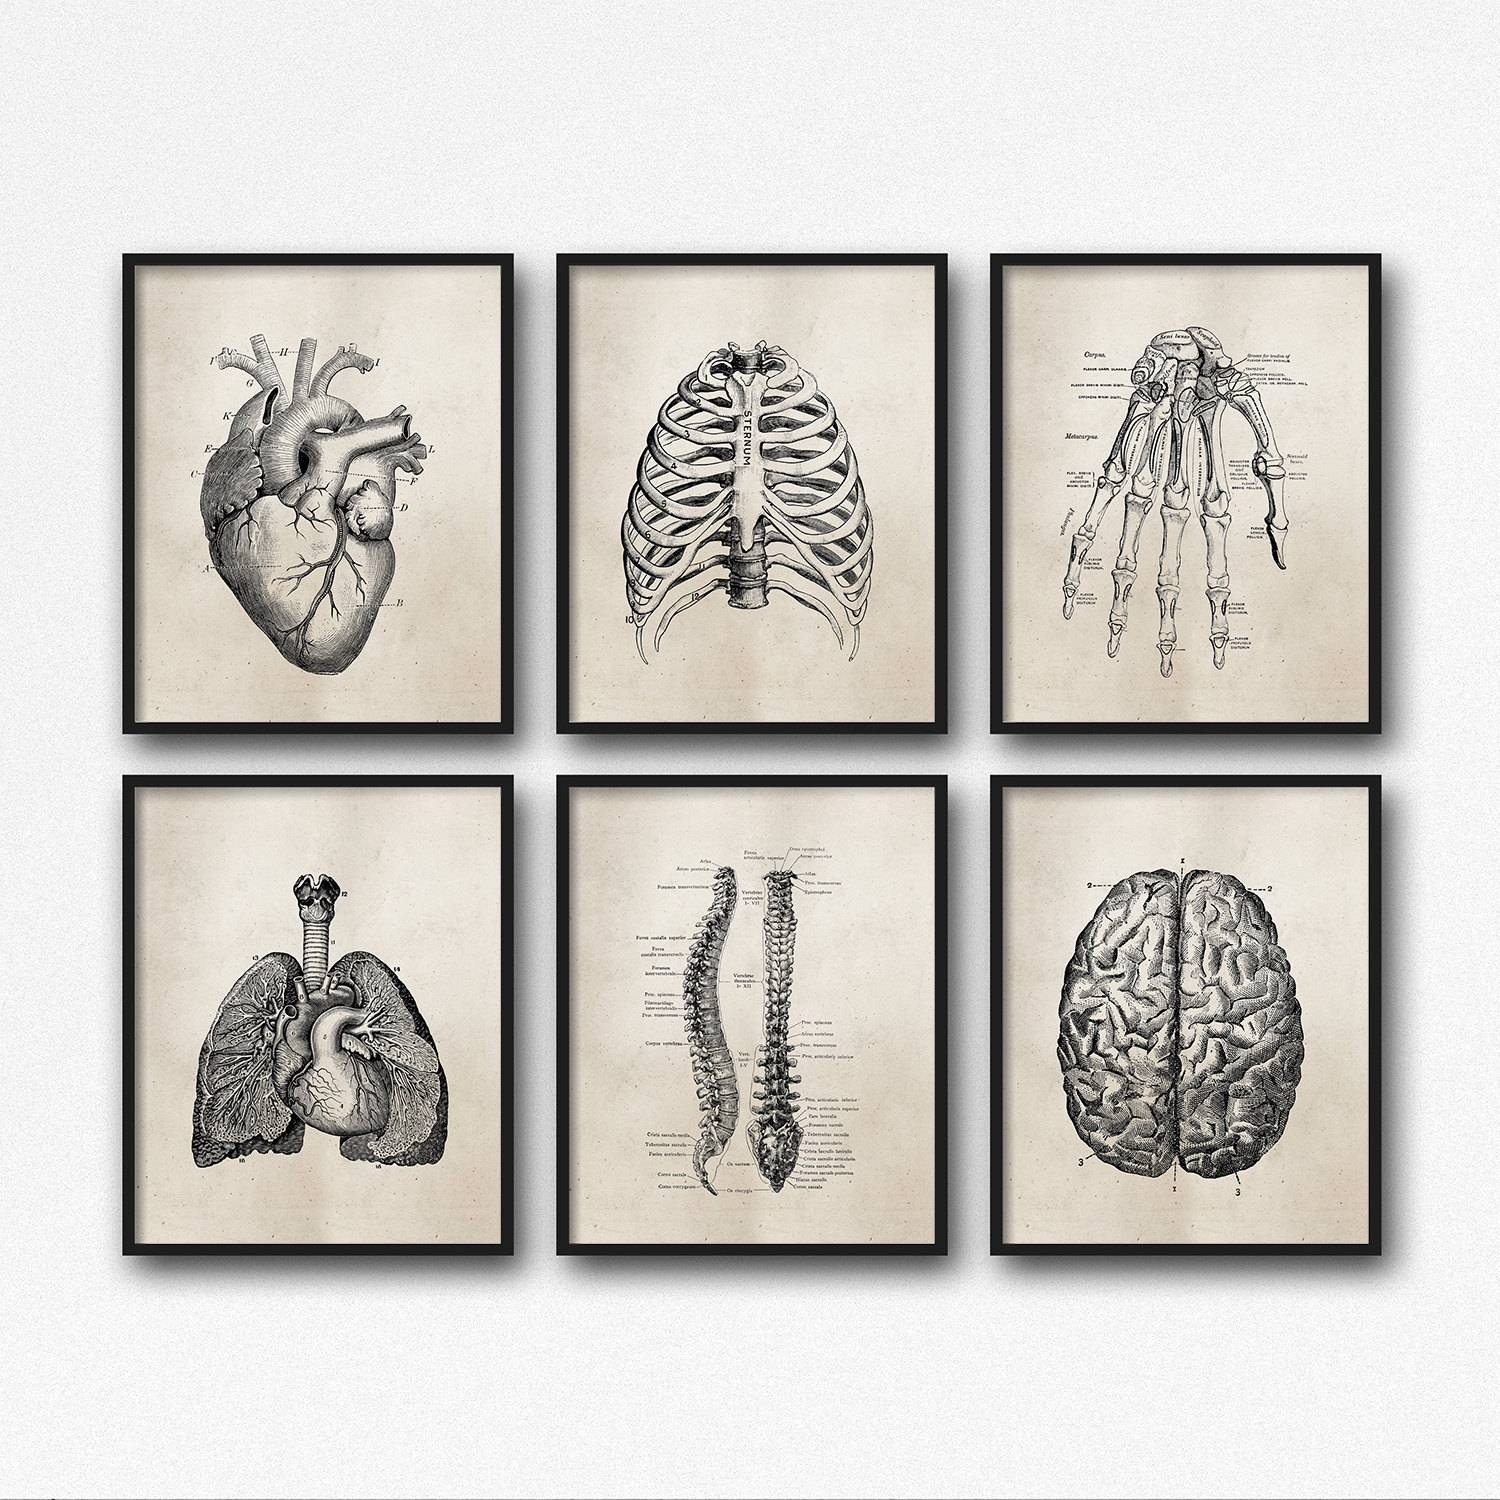 Anatomy Art Prints Office Art Medical Student Graduation For Recent Medical Wall Art (View 3 of 20)